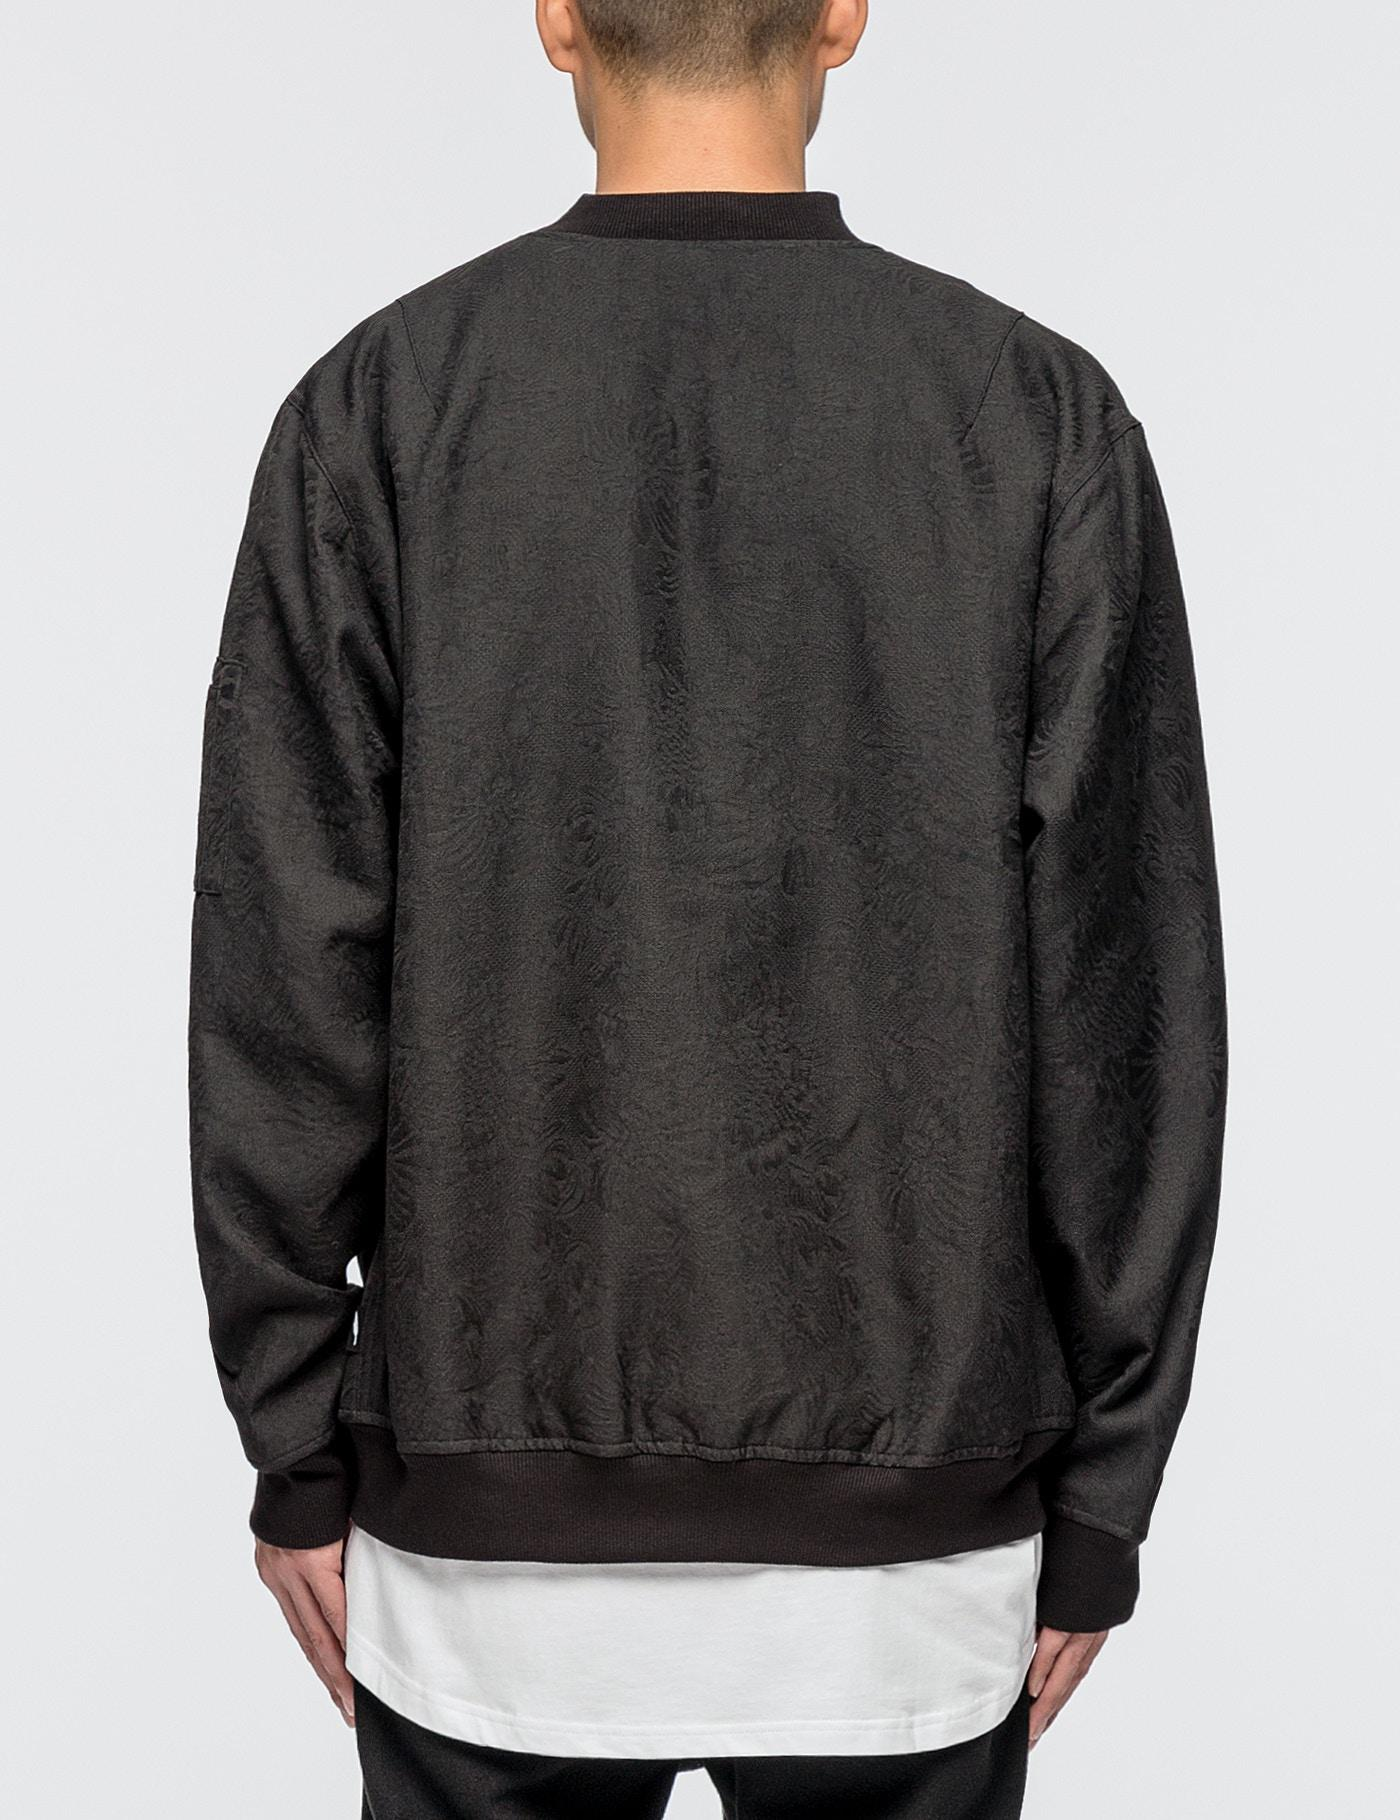 Publish Synthetic Imani Jacket in Black for Men